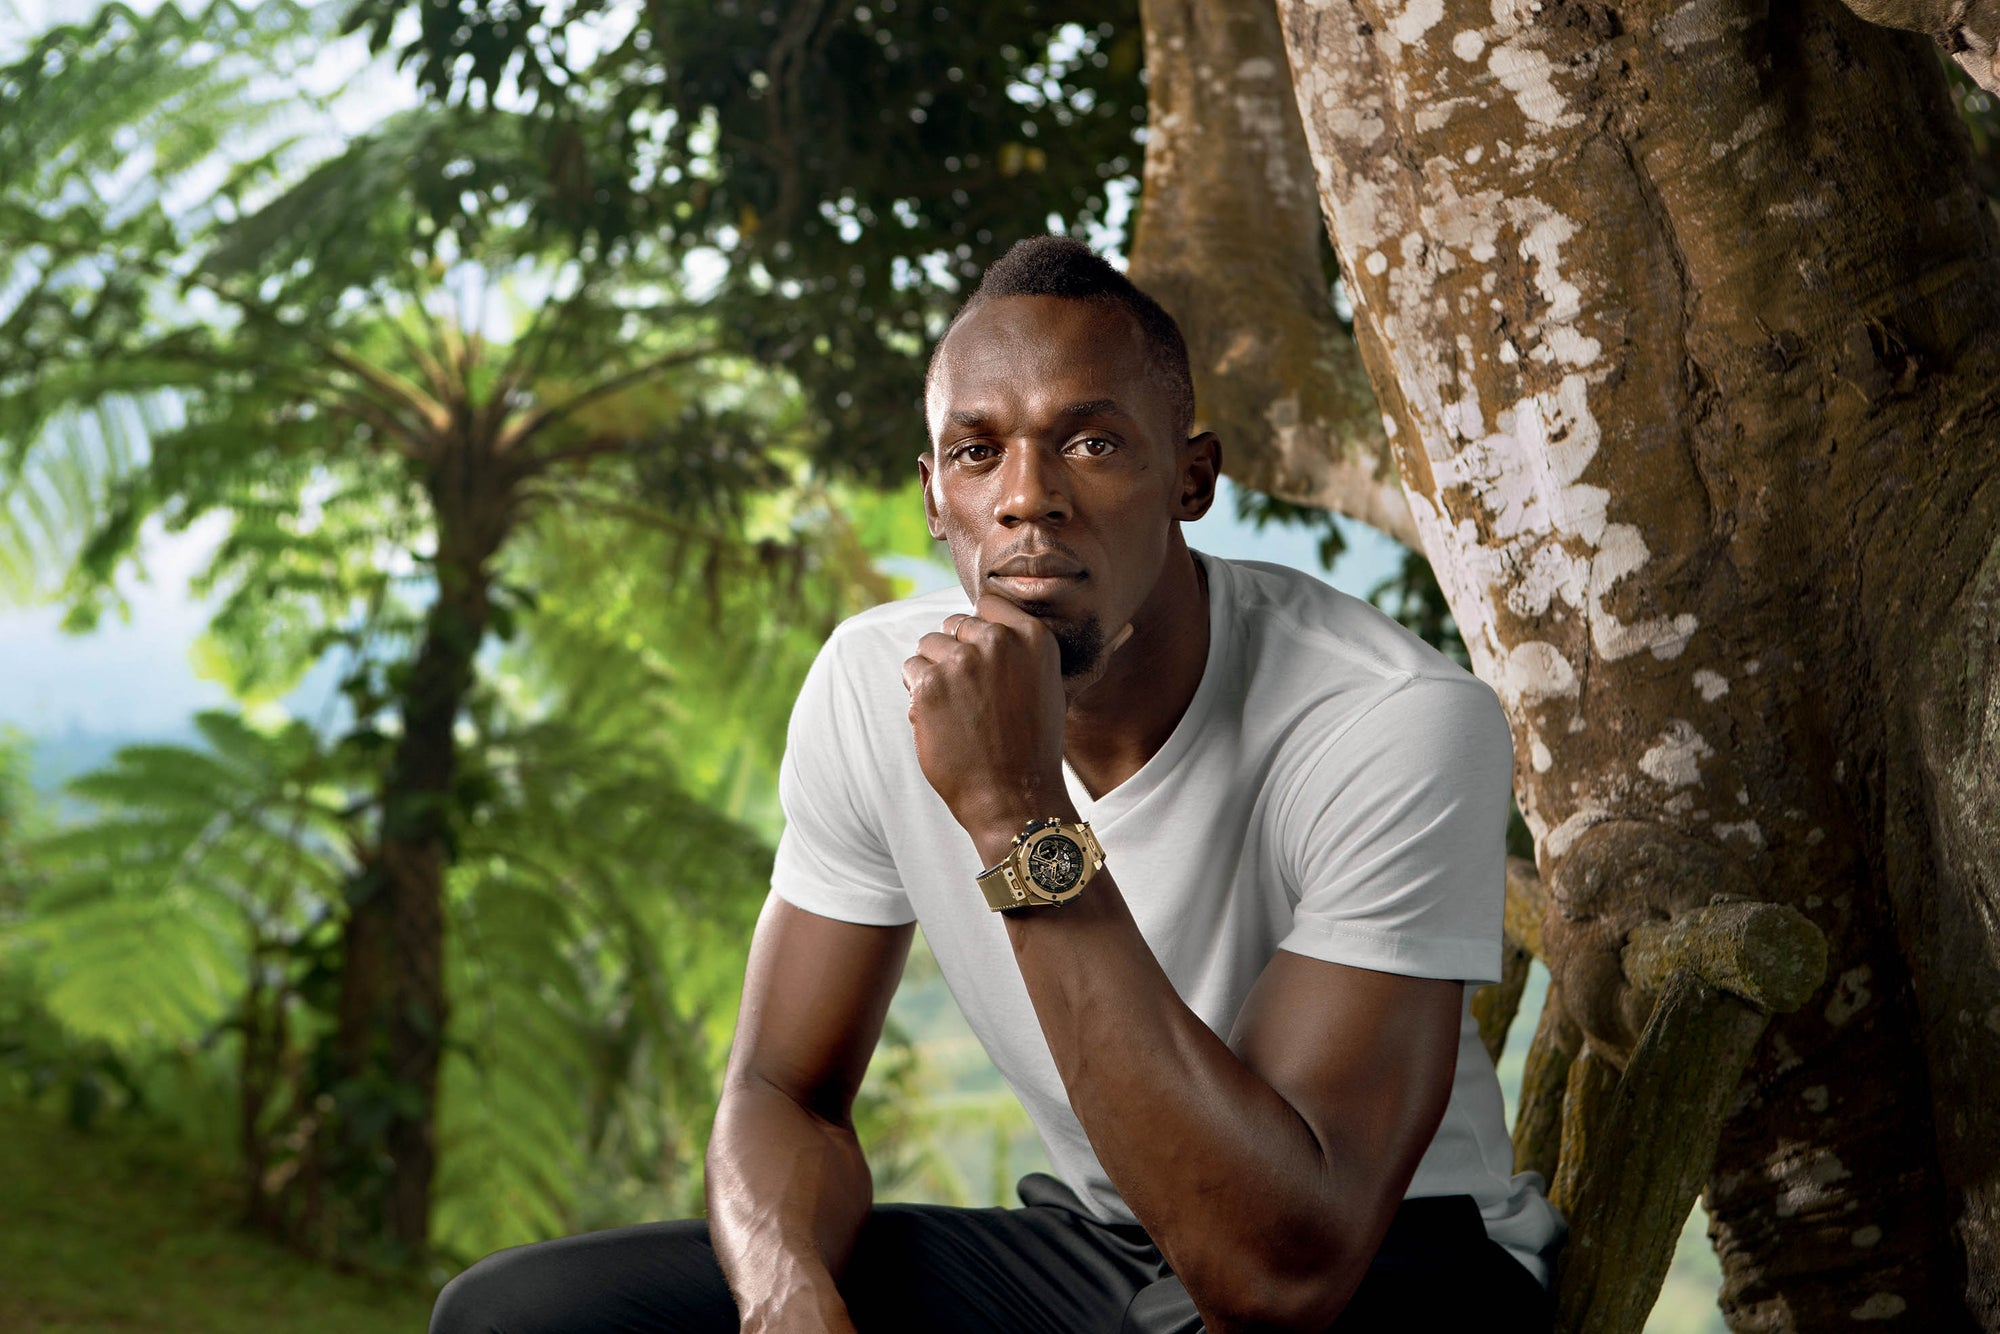 Usain Bolt x Hublot Deliver Three Newly Designed Custom Timepieces